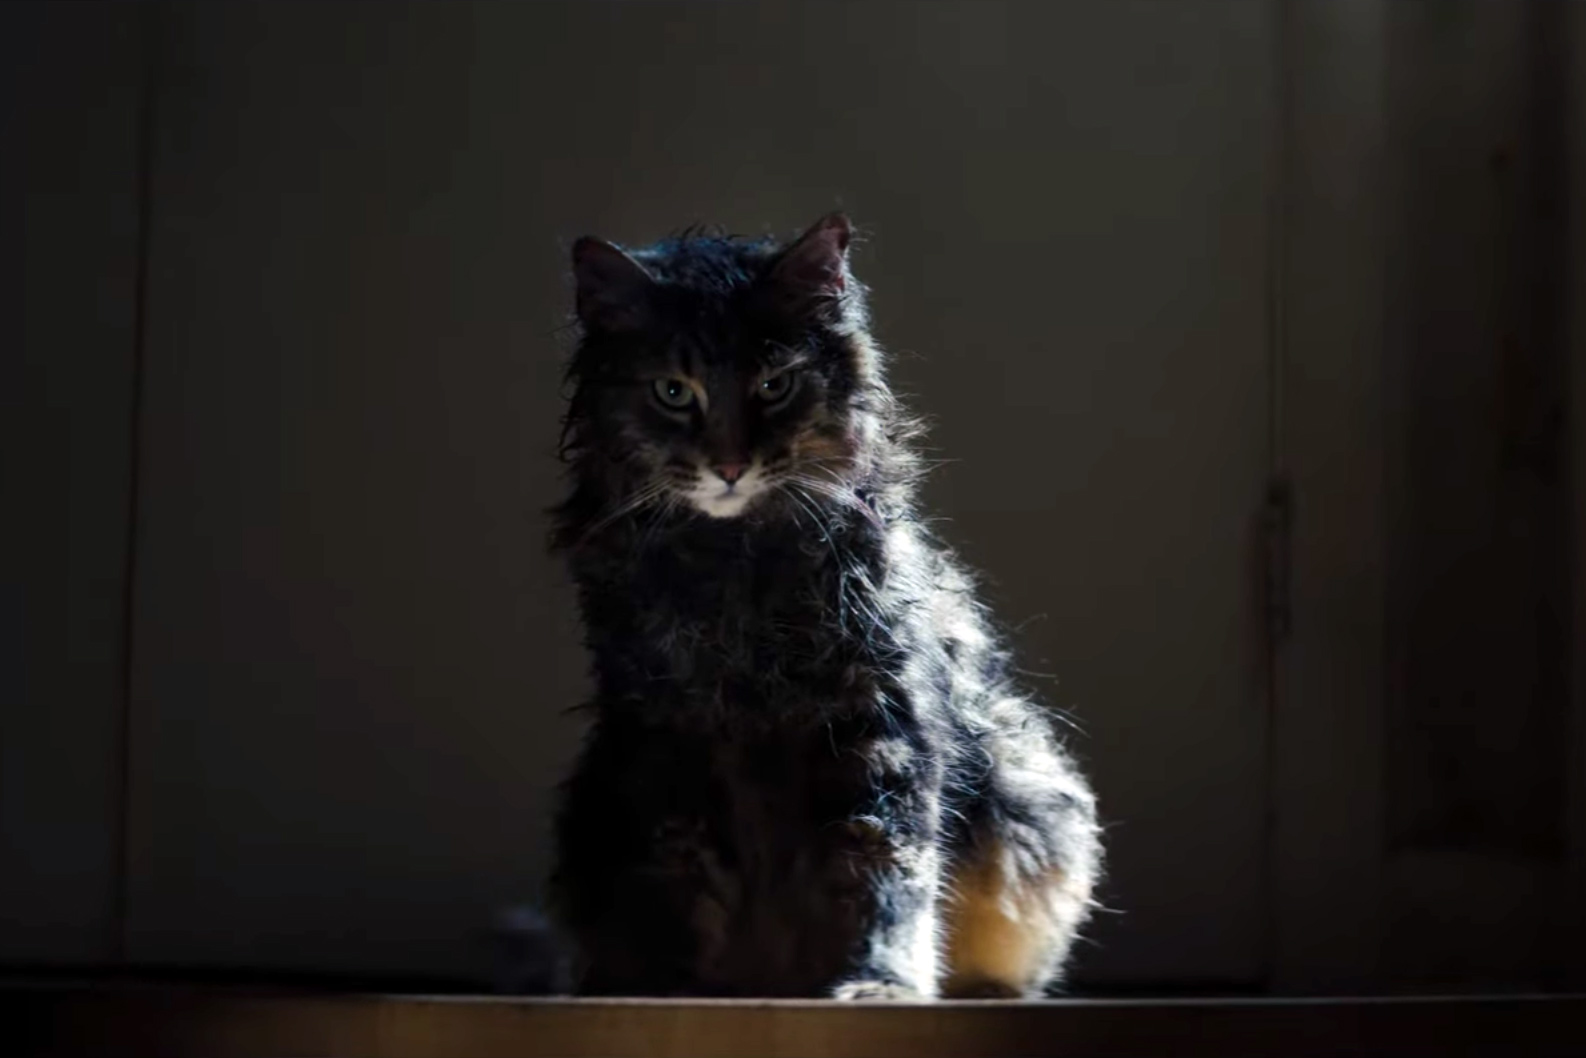 Watch Chilling New Trailer for Stephen King's 'Pet Sematary'